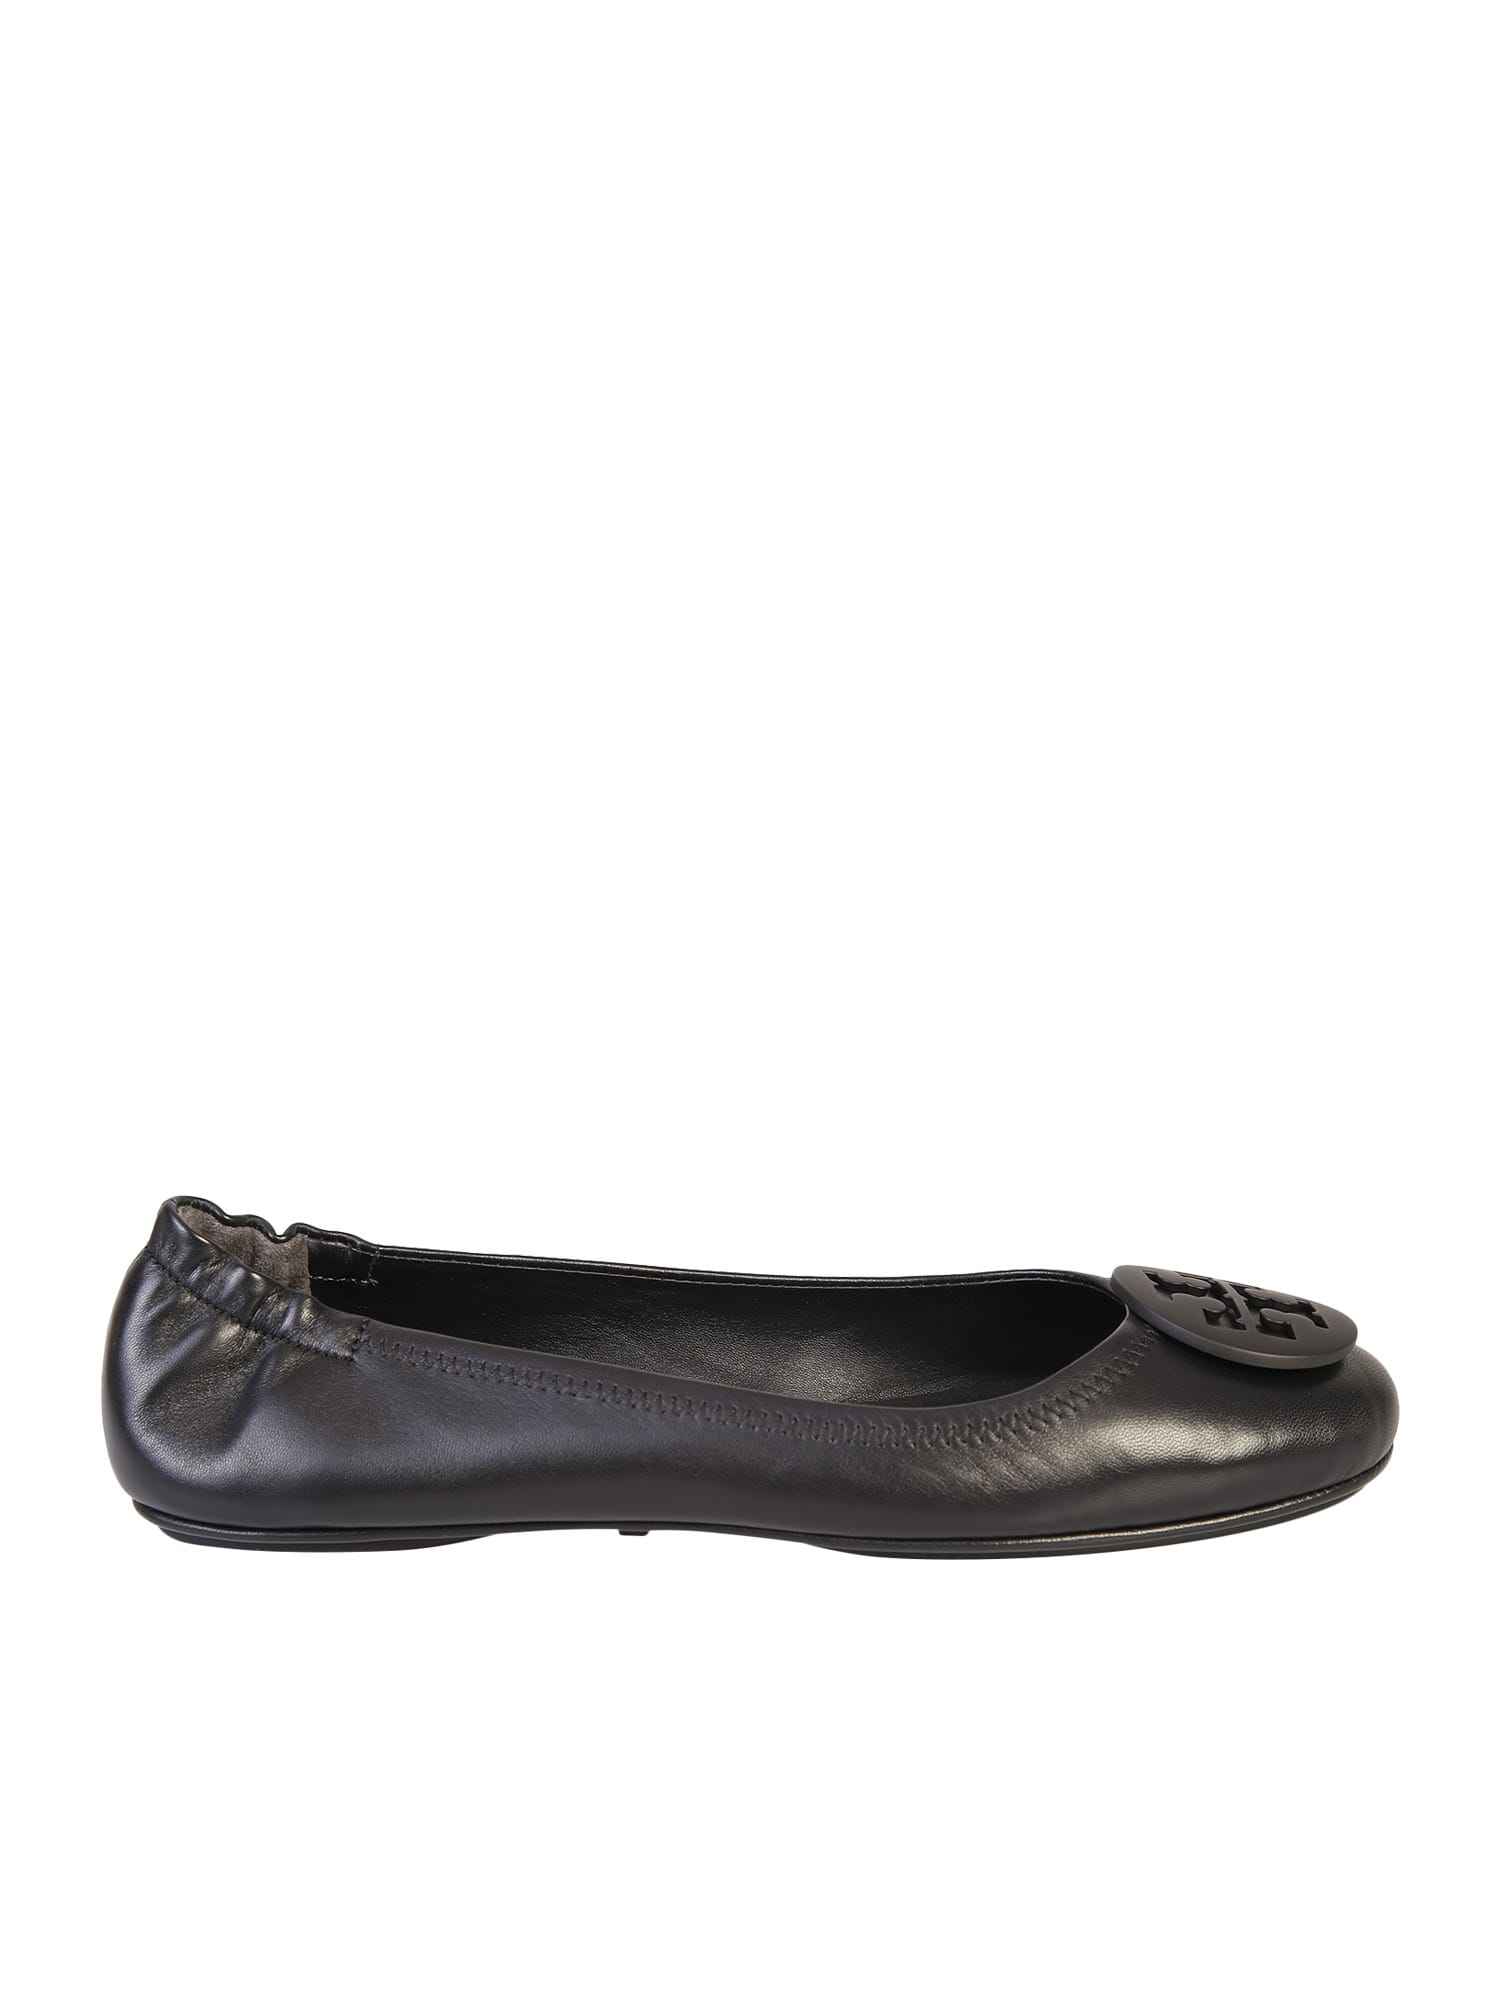 Buy Tory Burch Minnie Ballerina Flats online, shop Tory Burch shoes with free shipping